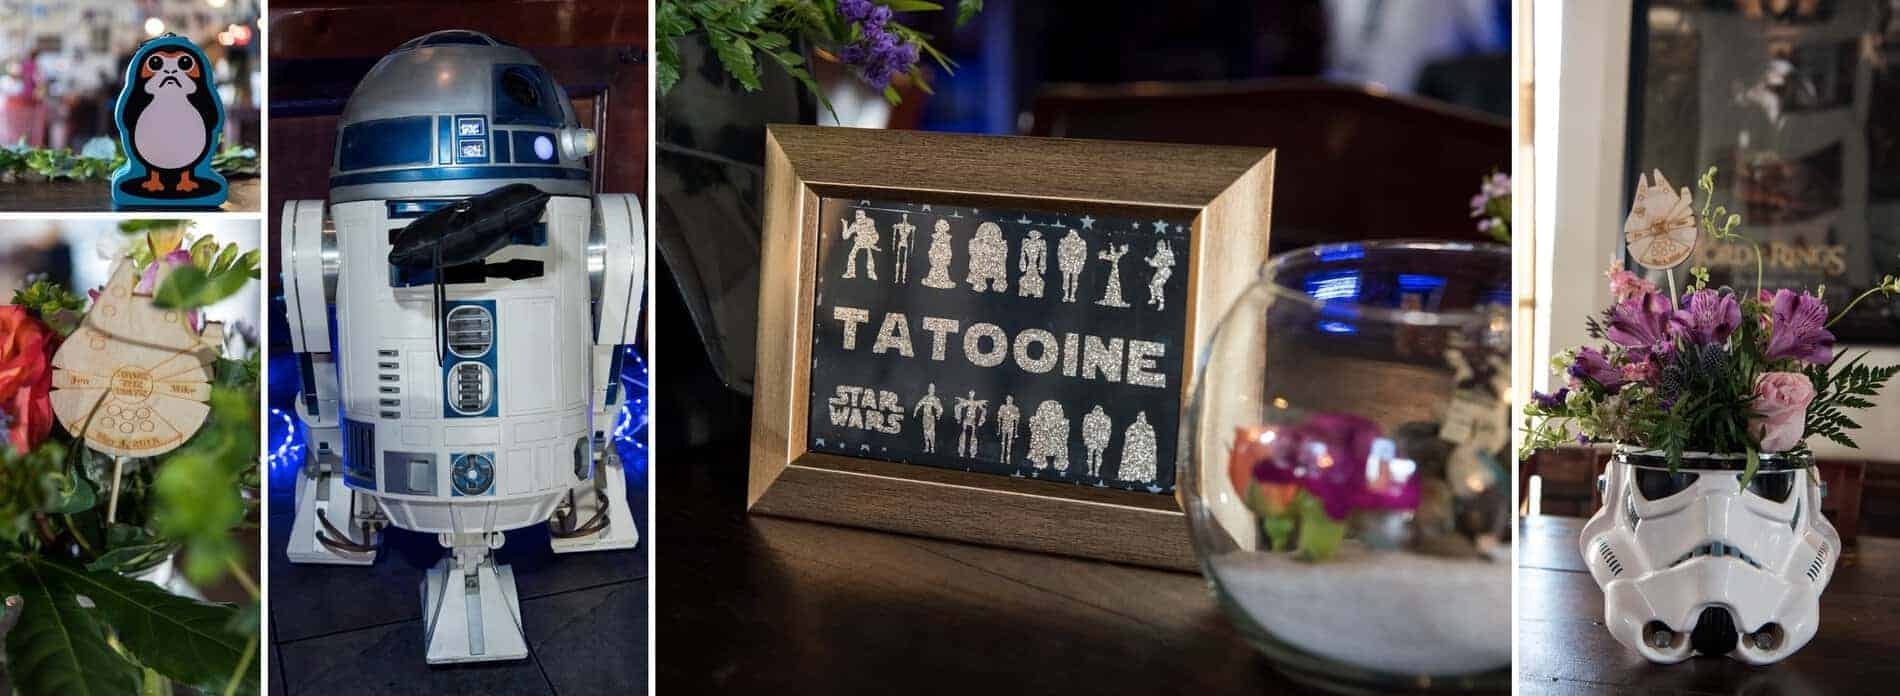 Wedding Sign and R2-D2 ringbearer at a Sci-Fi Wedding